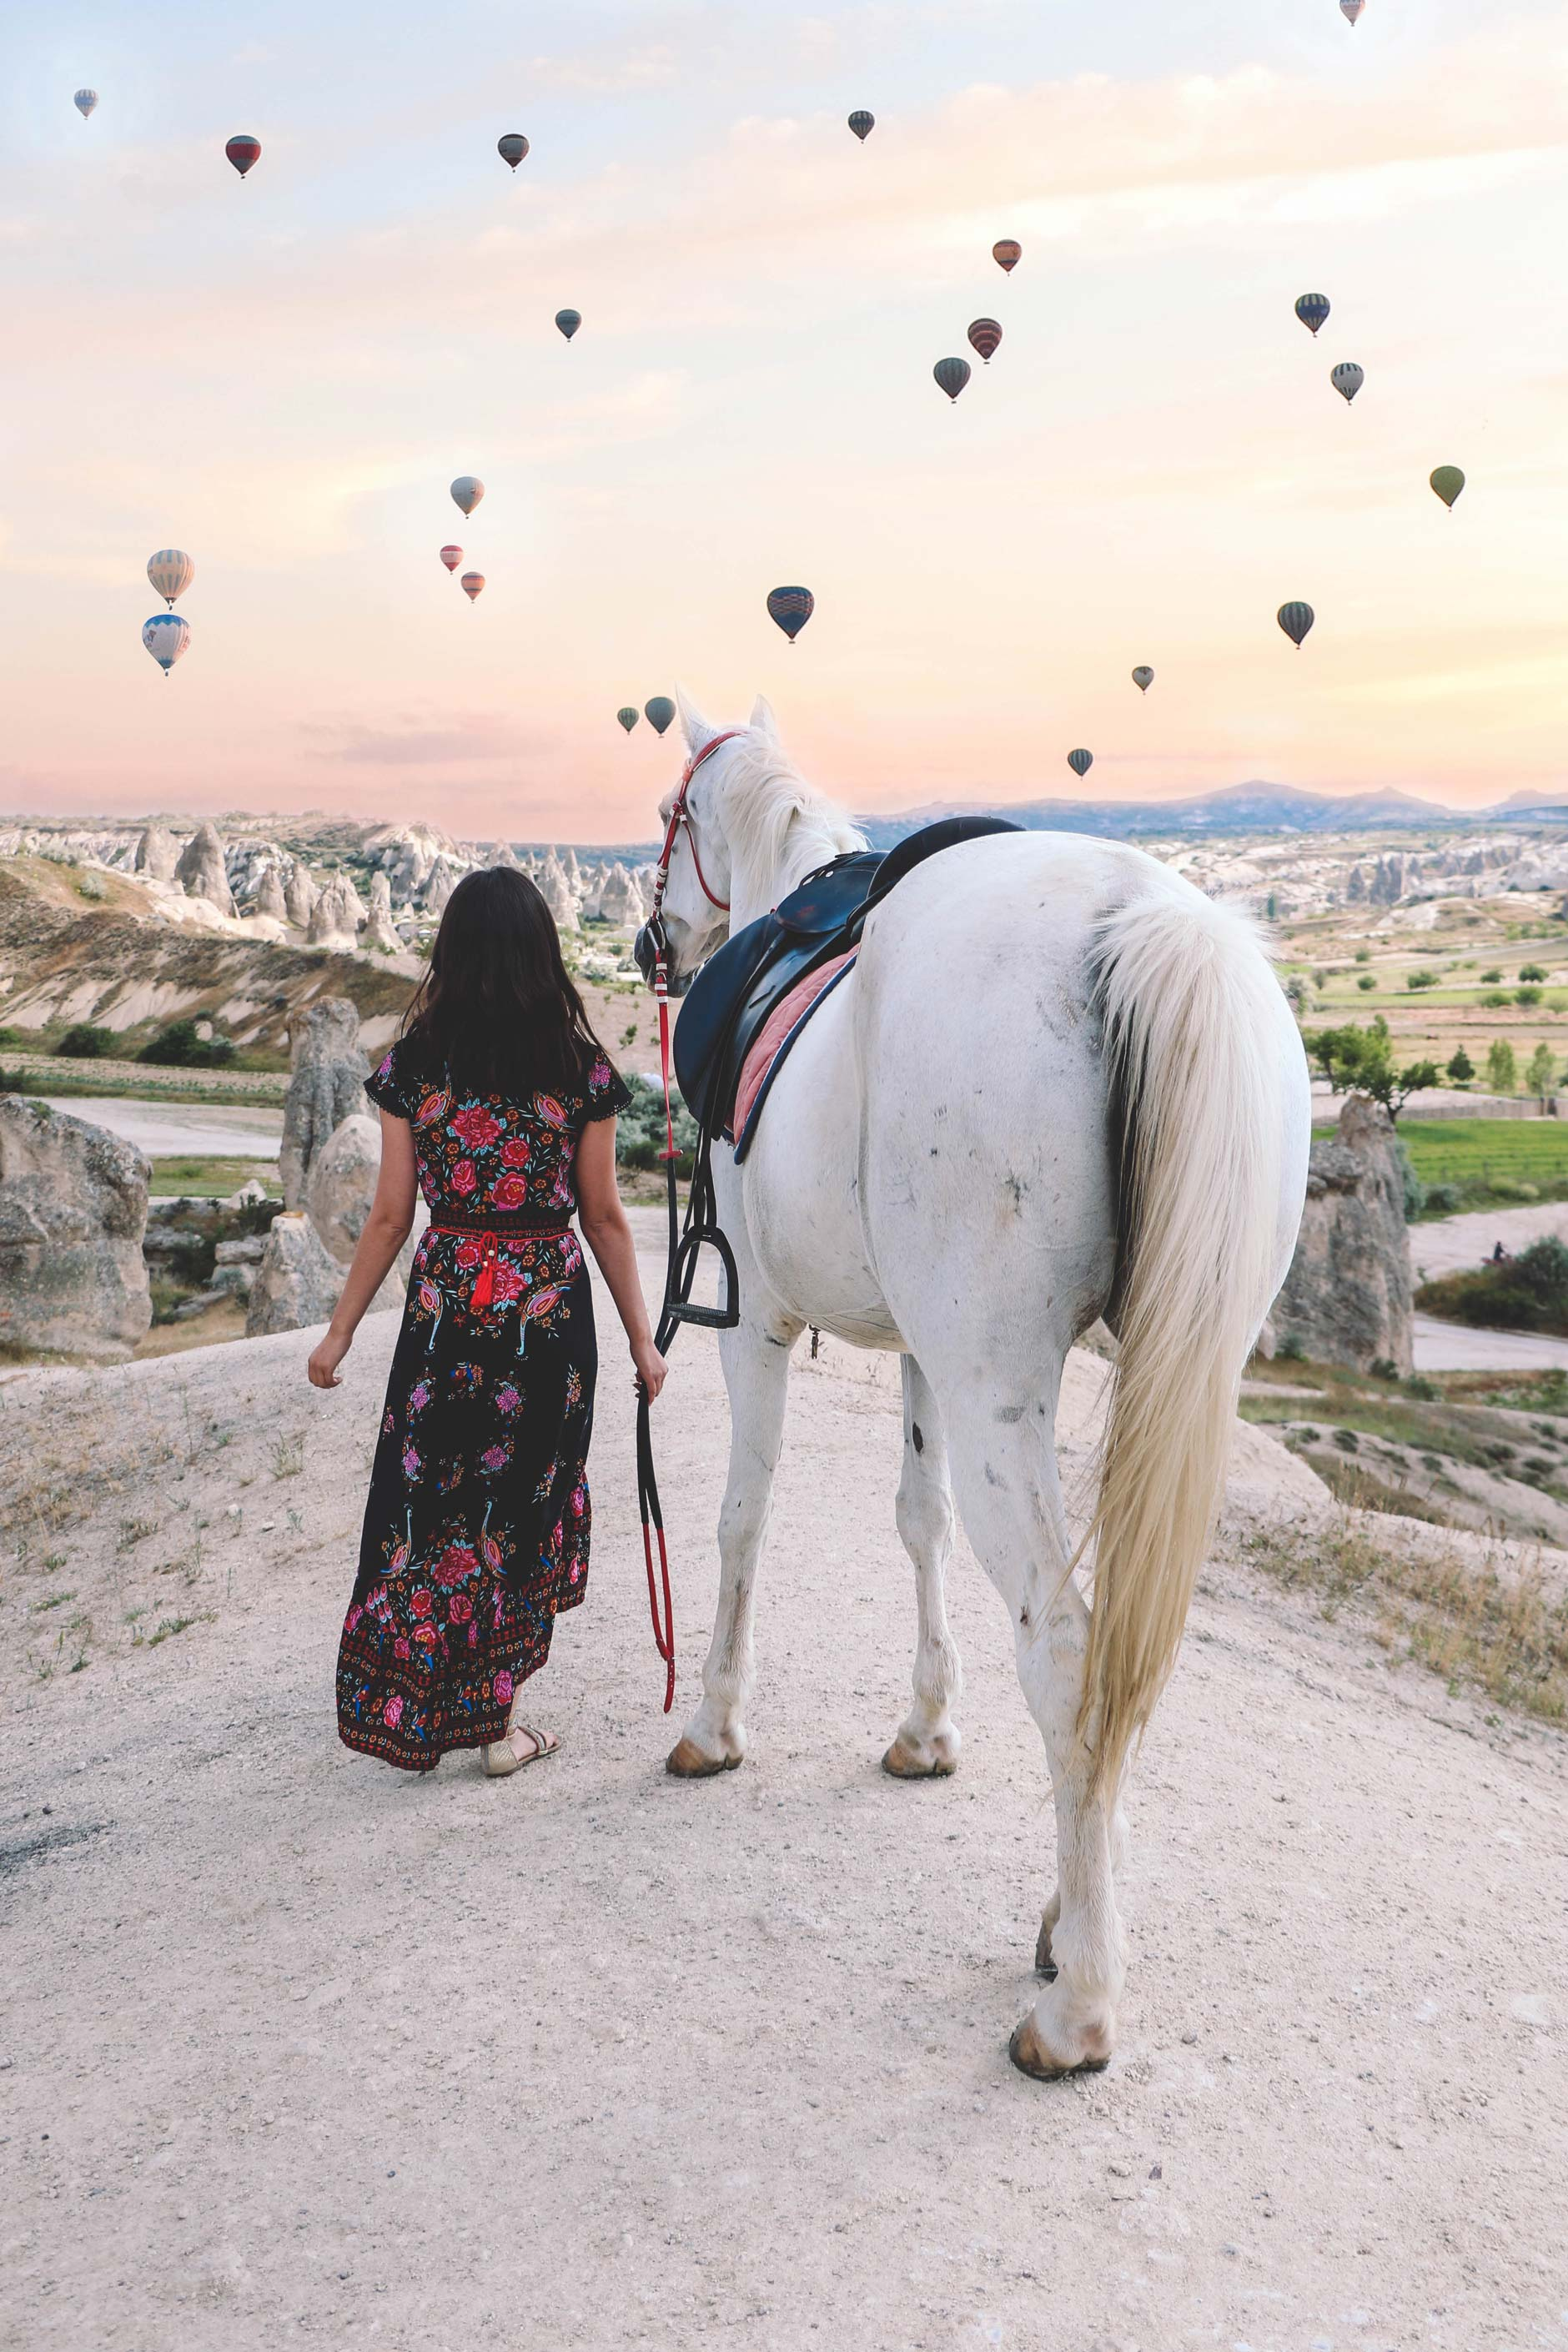 Review Horseback Photoshoot With Cappadocia Ranch